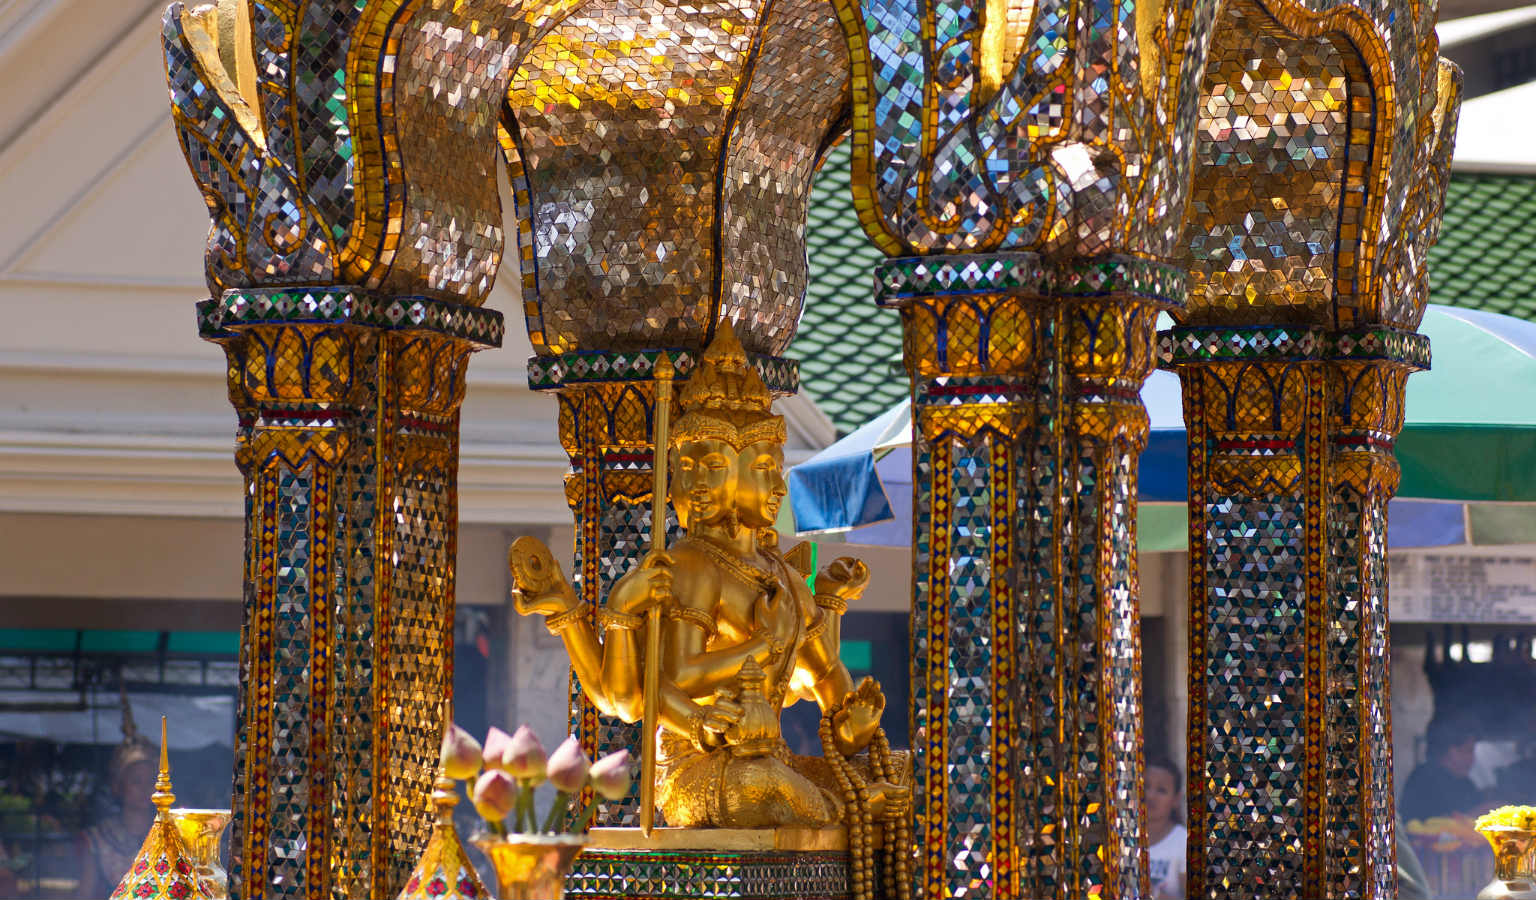 Ingezoomed op de Erawan Shrine in Bangkok, Thailand